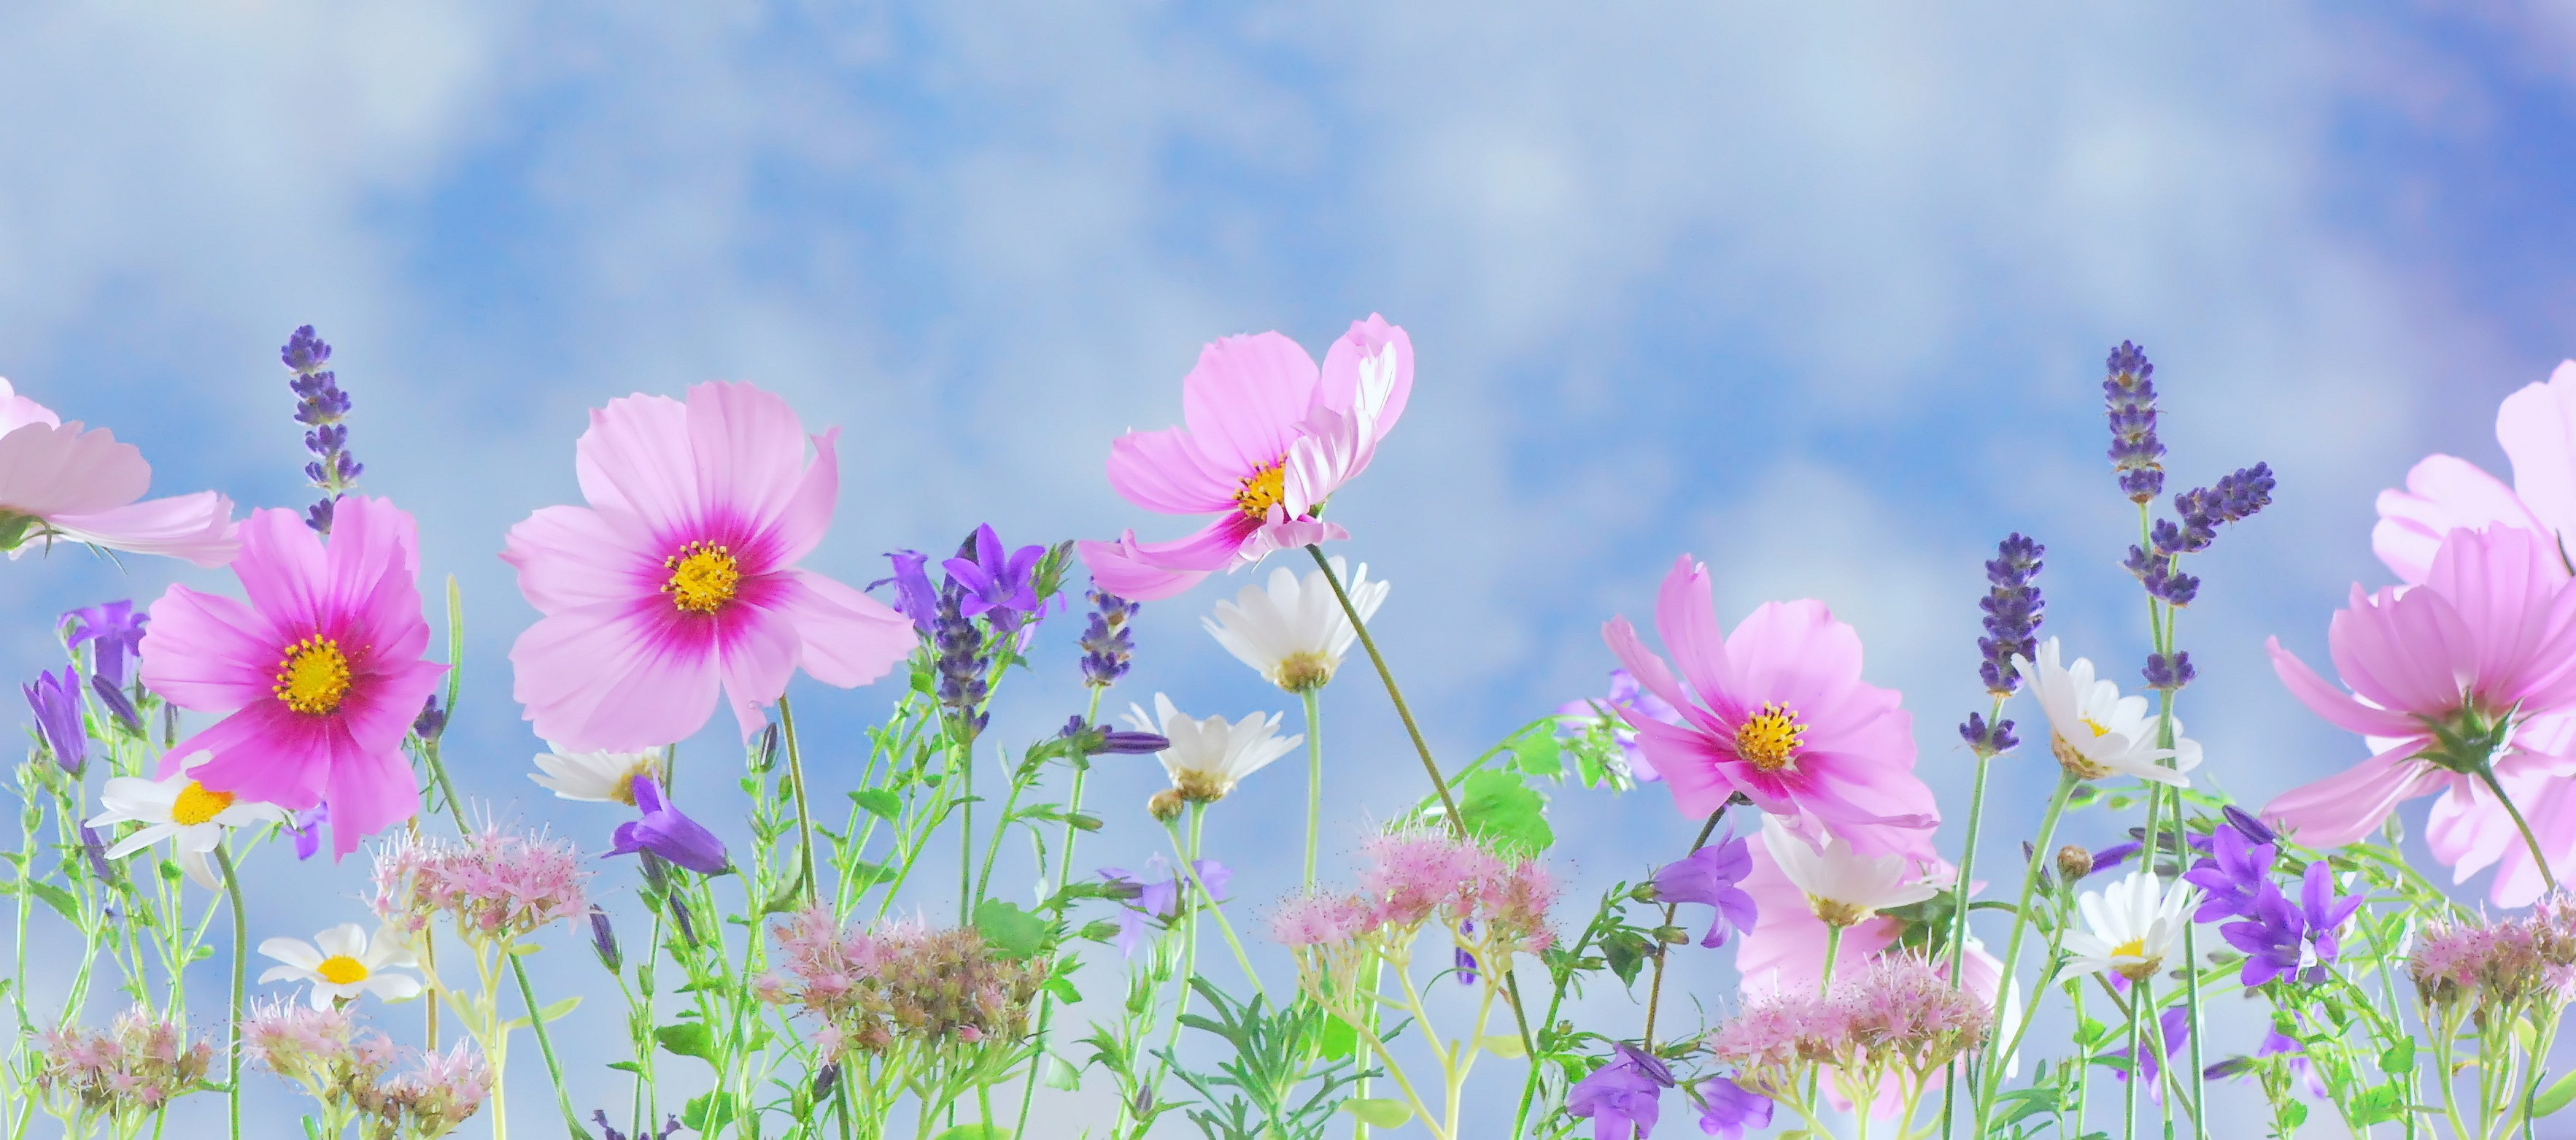 A guide to using flowers in your health and beauty routines izmirmasajfo